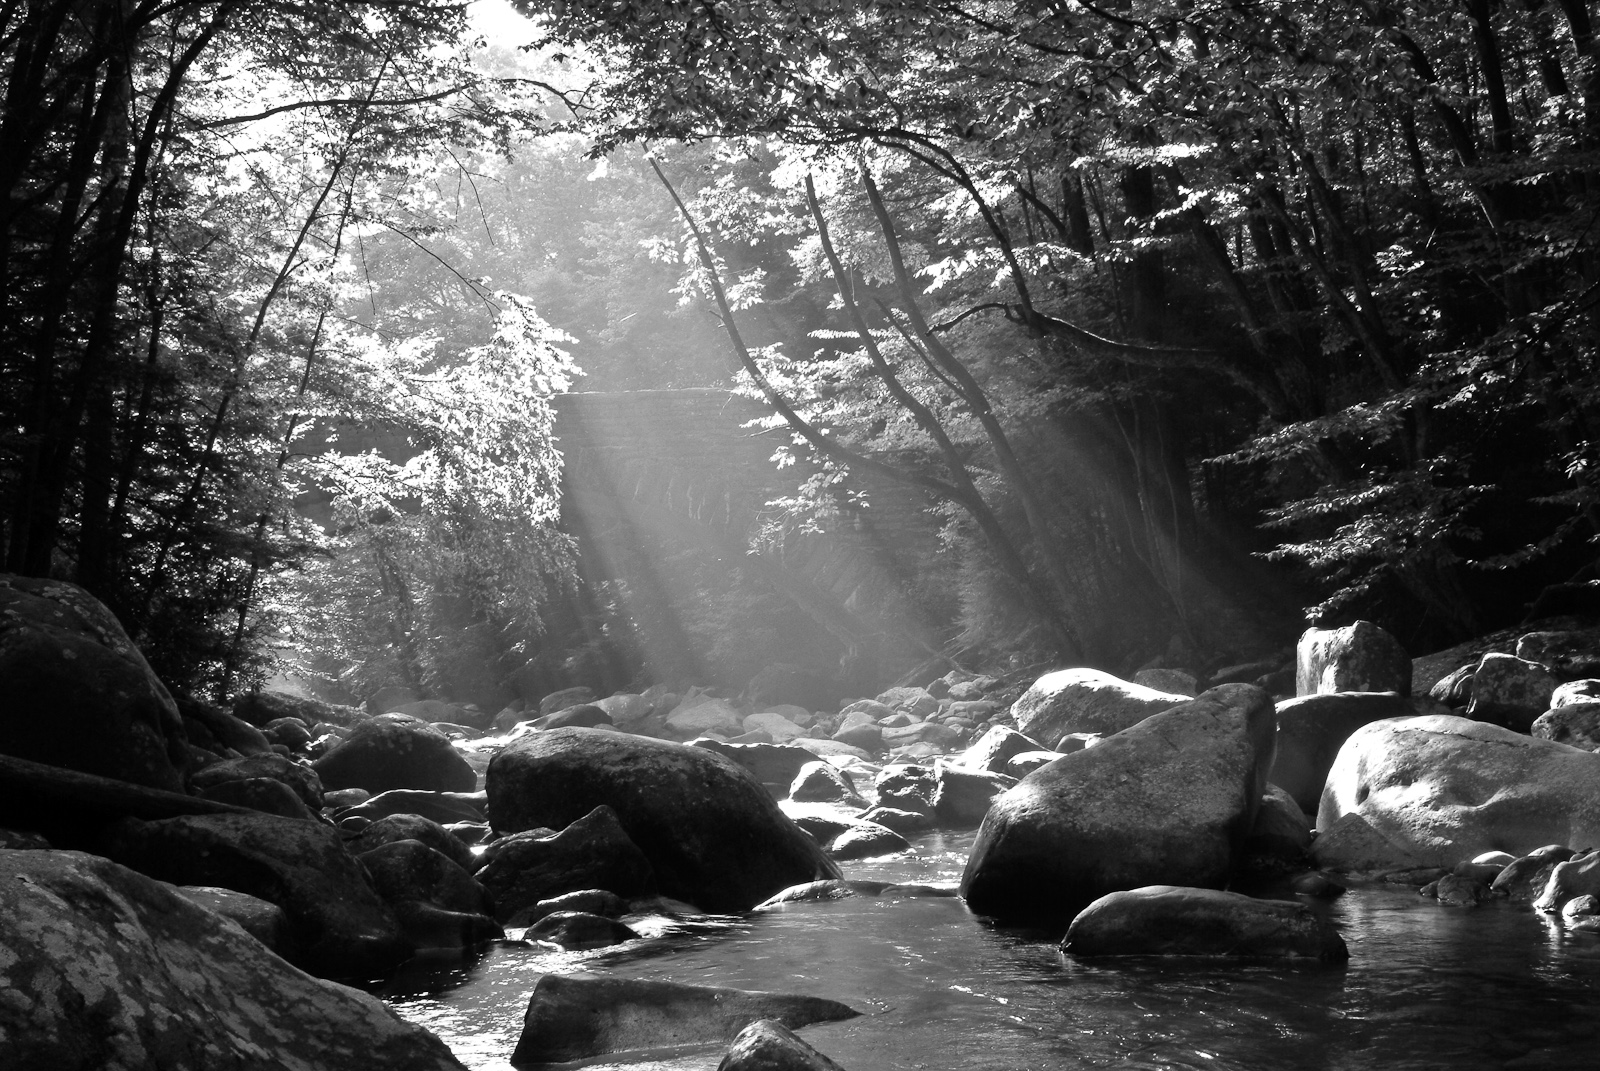 Black and White Portfolio | Smoky Mountain Pictures, Eric Gebhart ...: smokymountainpictures.com/black-and-white-portfolio